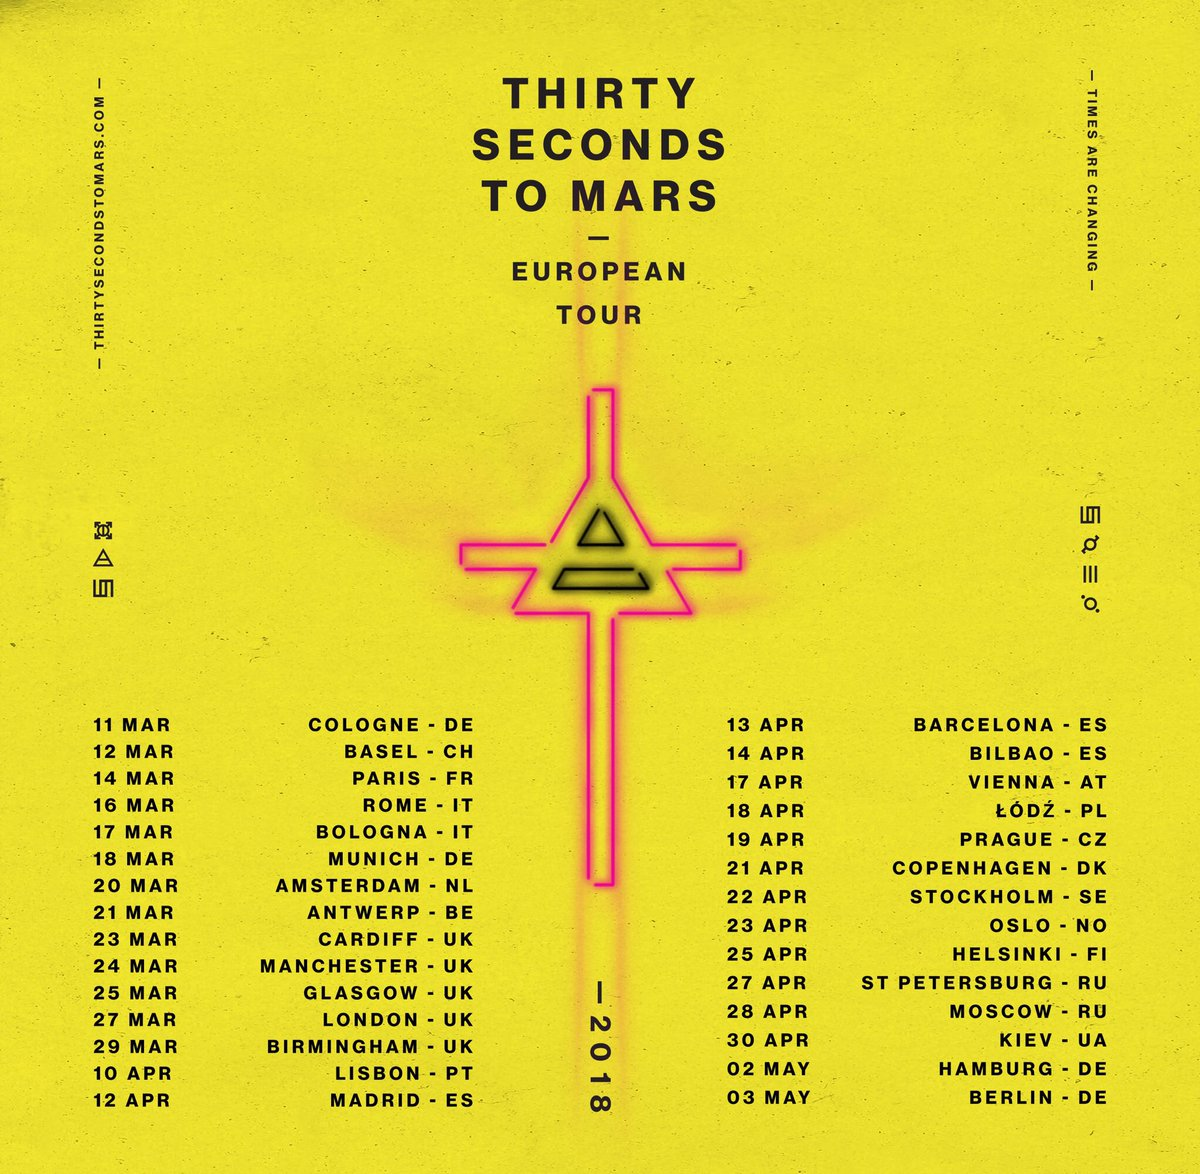 Thirty seconds to mars on twitter announcing the return of mars thirty seconds to mars on twitter announcing the return of mars european tour 2018 tix vip on sale fri oct 13 m4hsunfo